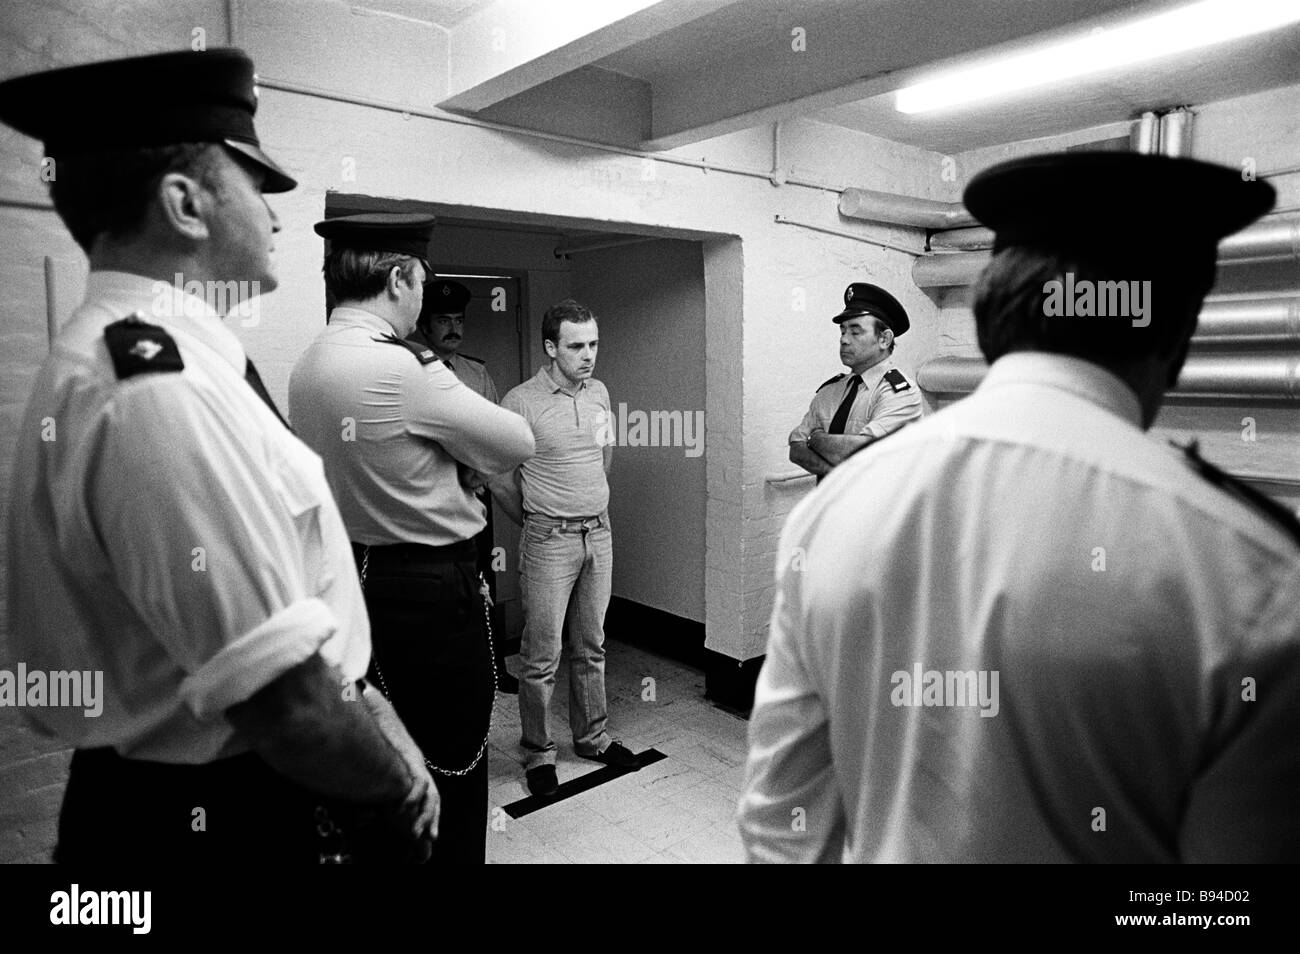 Prison officers watch over a prisoner toeing the line during an interview with the govenor Pentonville Prison London - Stock Image